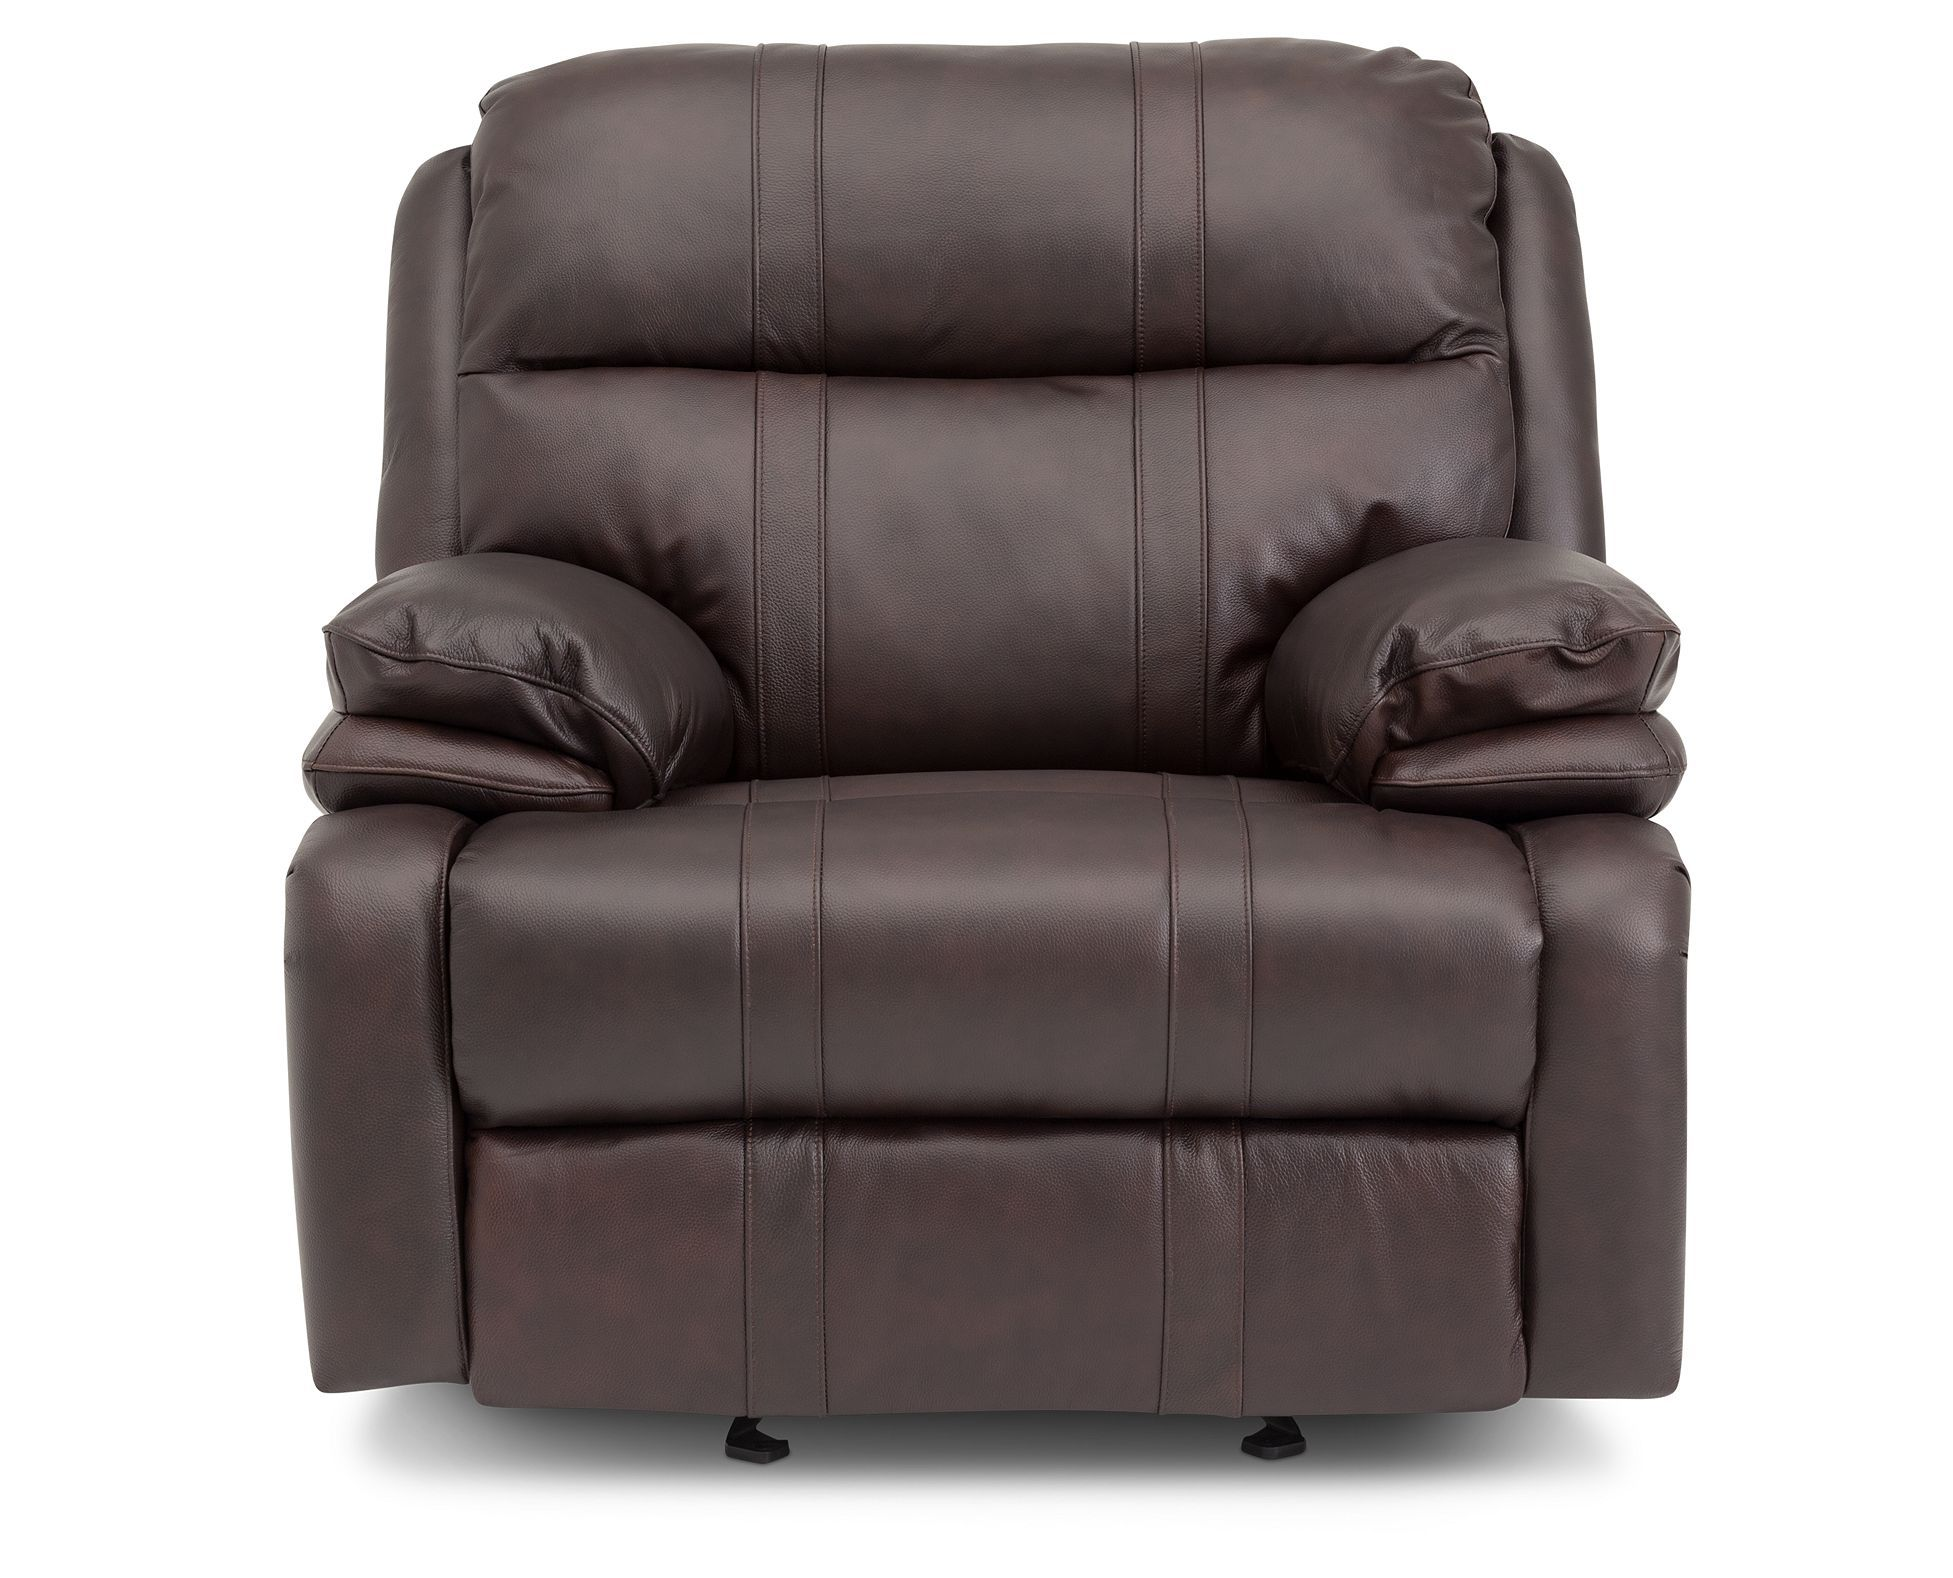 Sofa Mart Recliner Chairs How To Clean Fabric Cushions Grand Prix 1 844 763 6278 For The